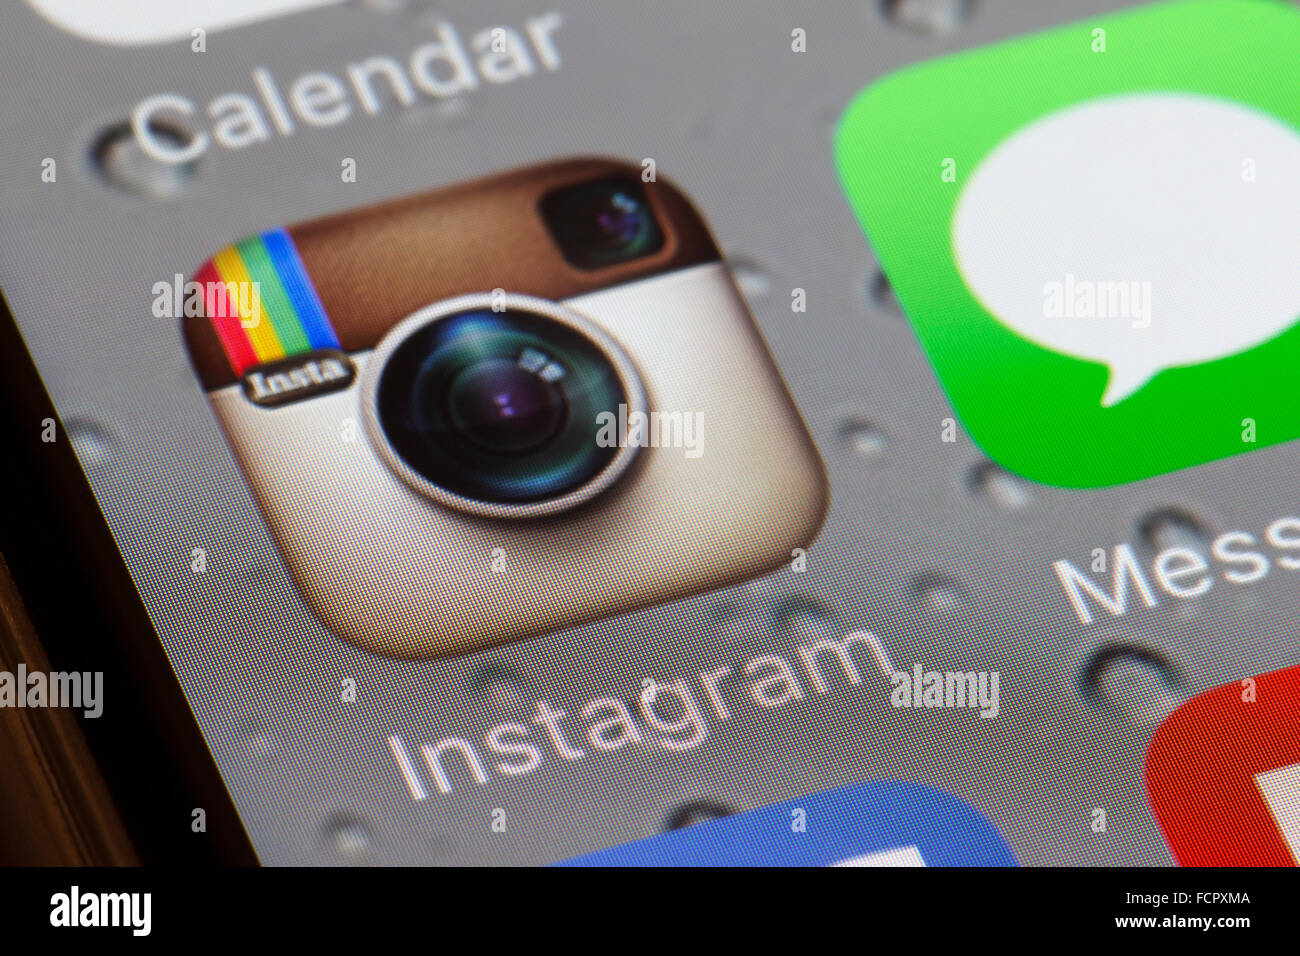 Instagram app on an iphone 6 screen - Stock Image